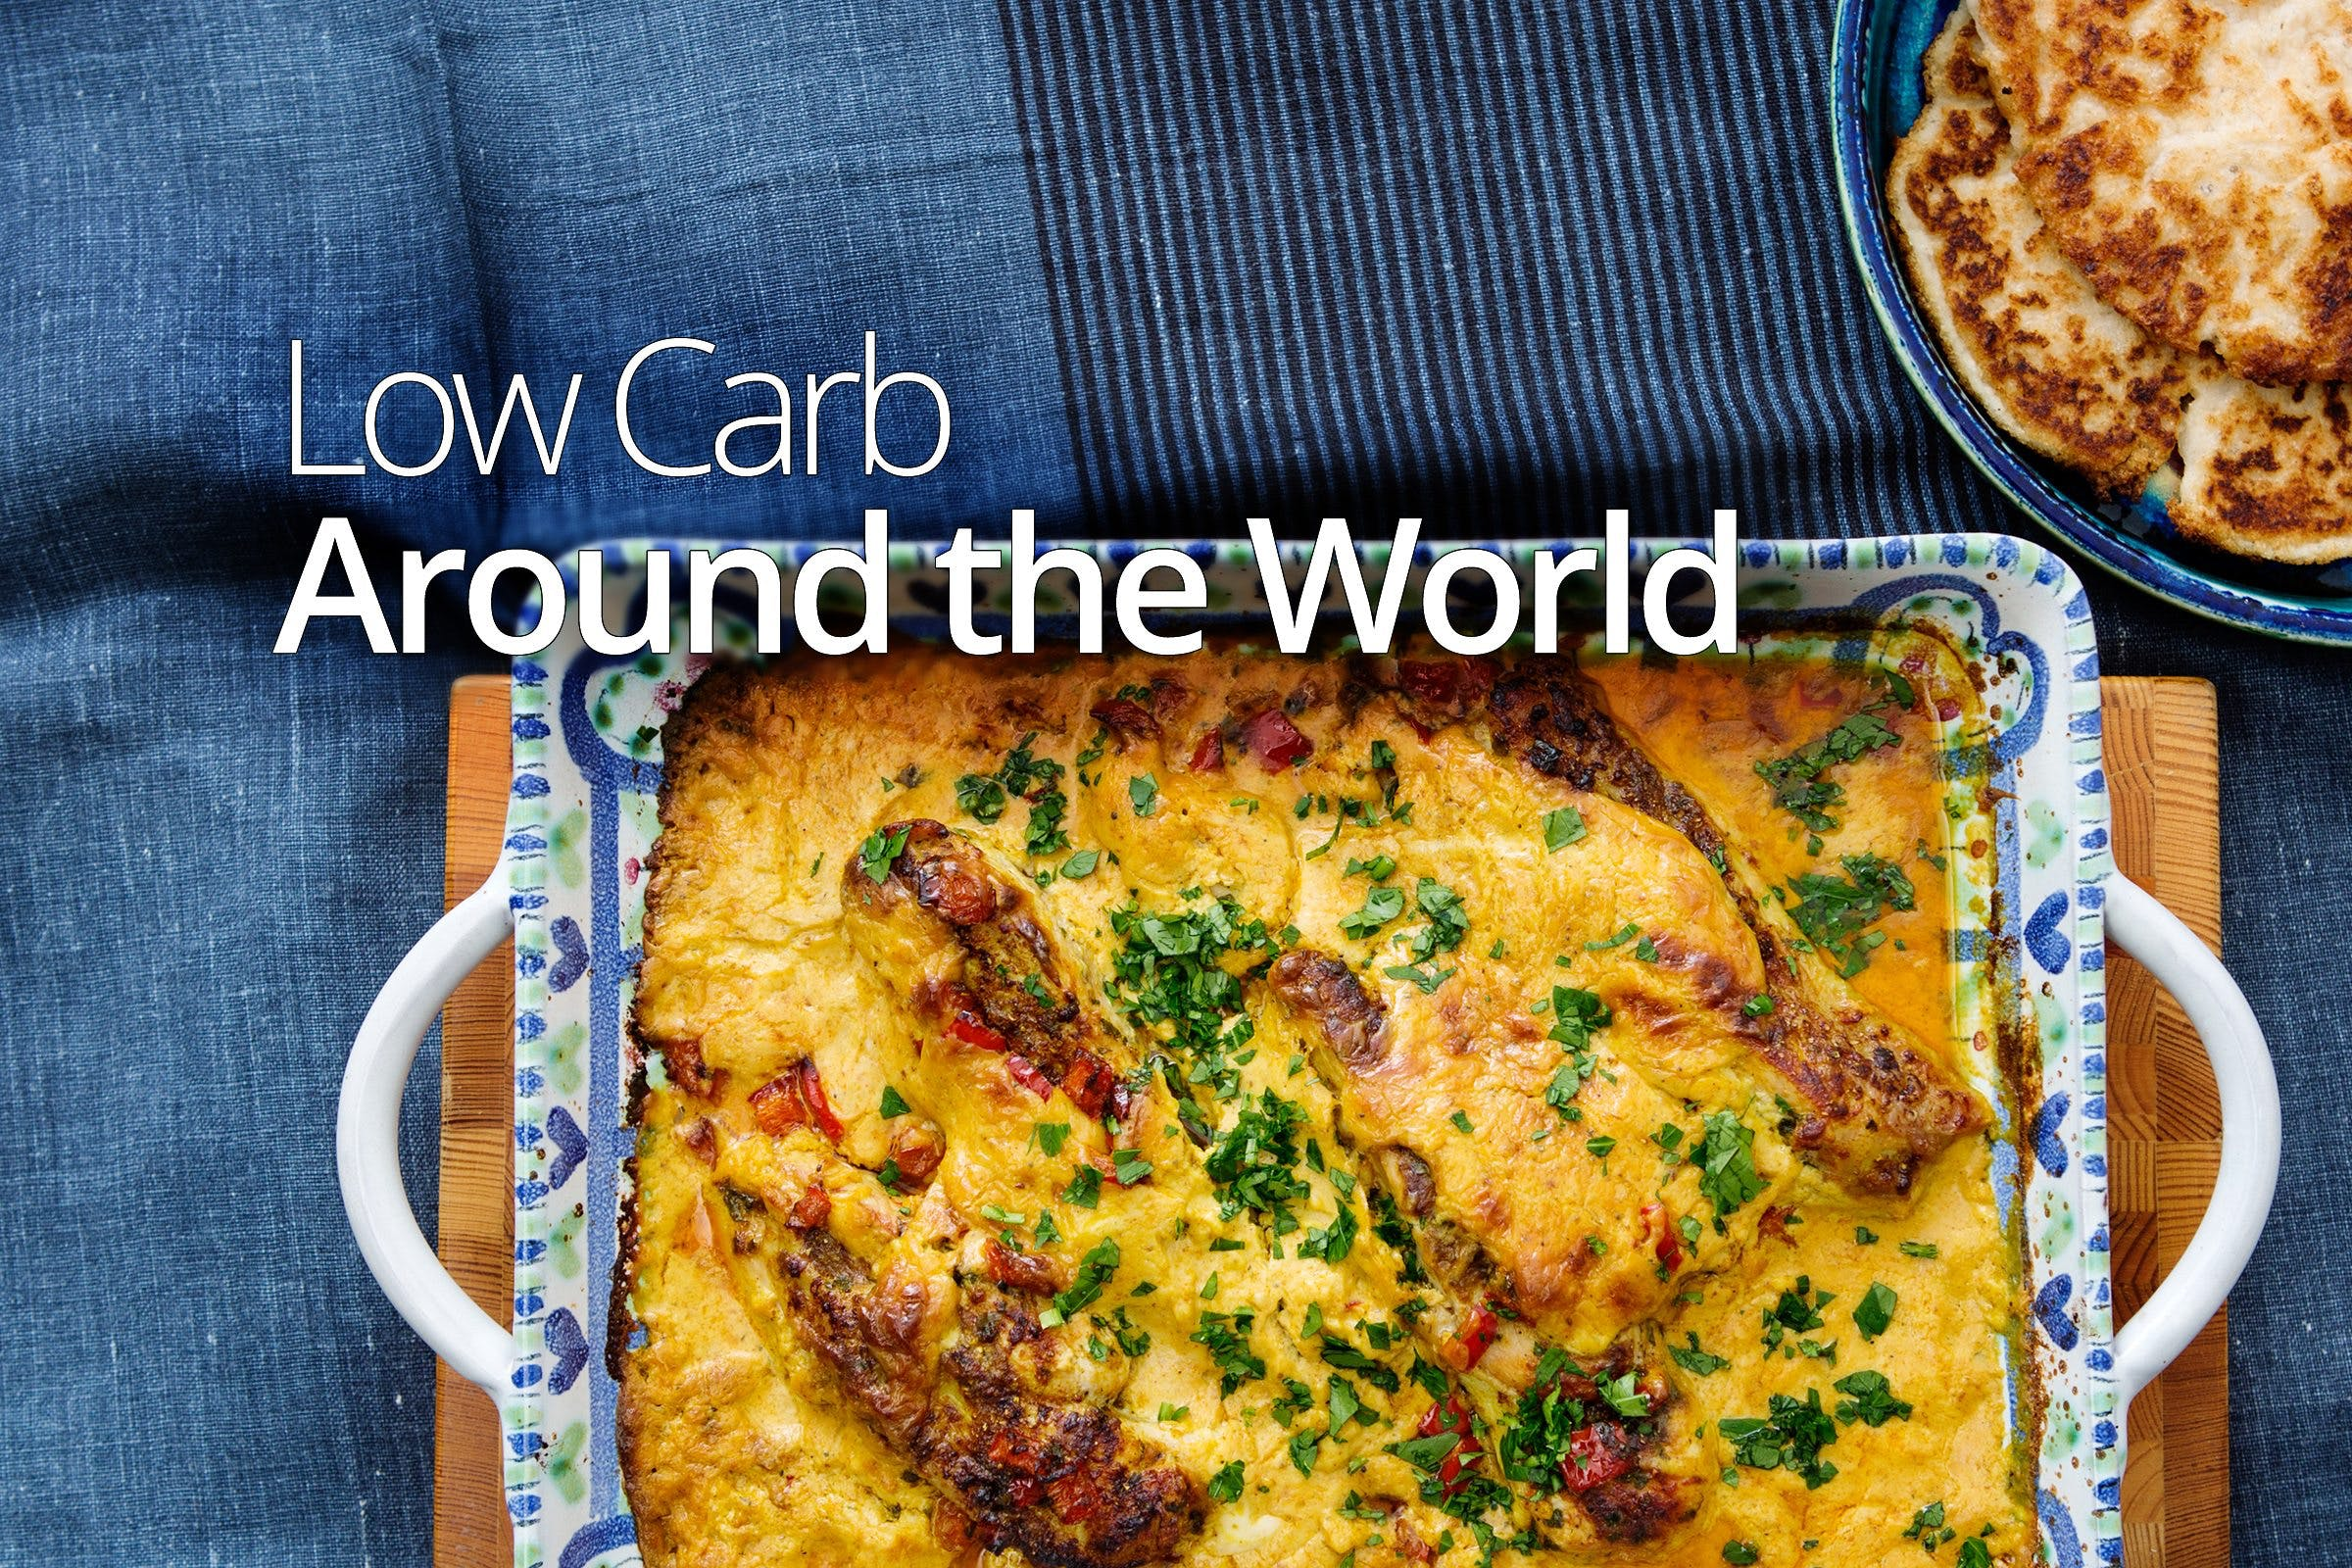 Low carb around the world